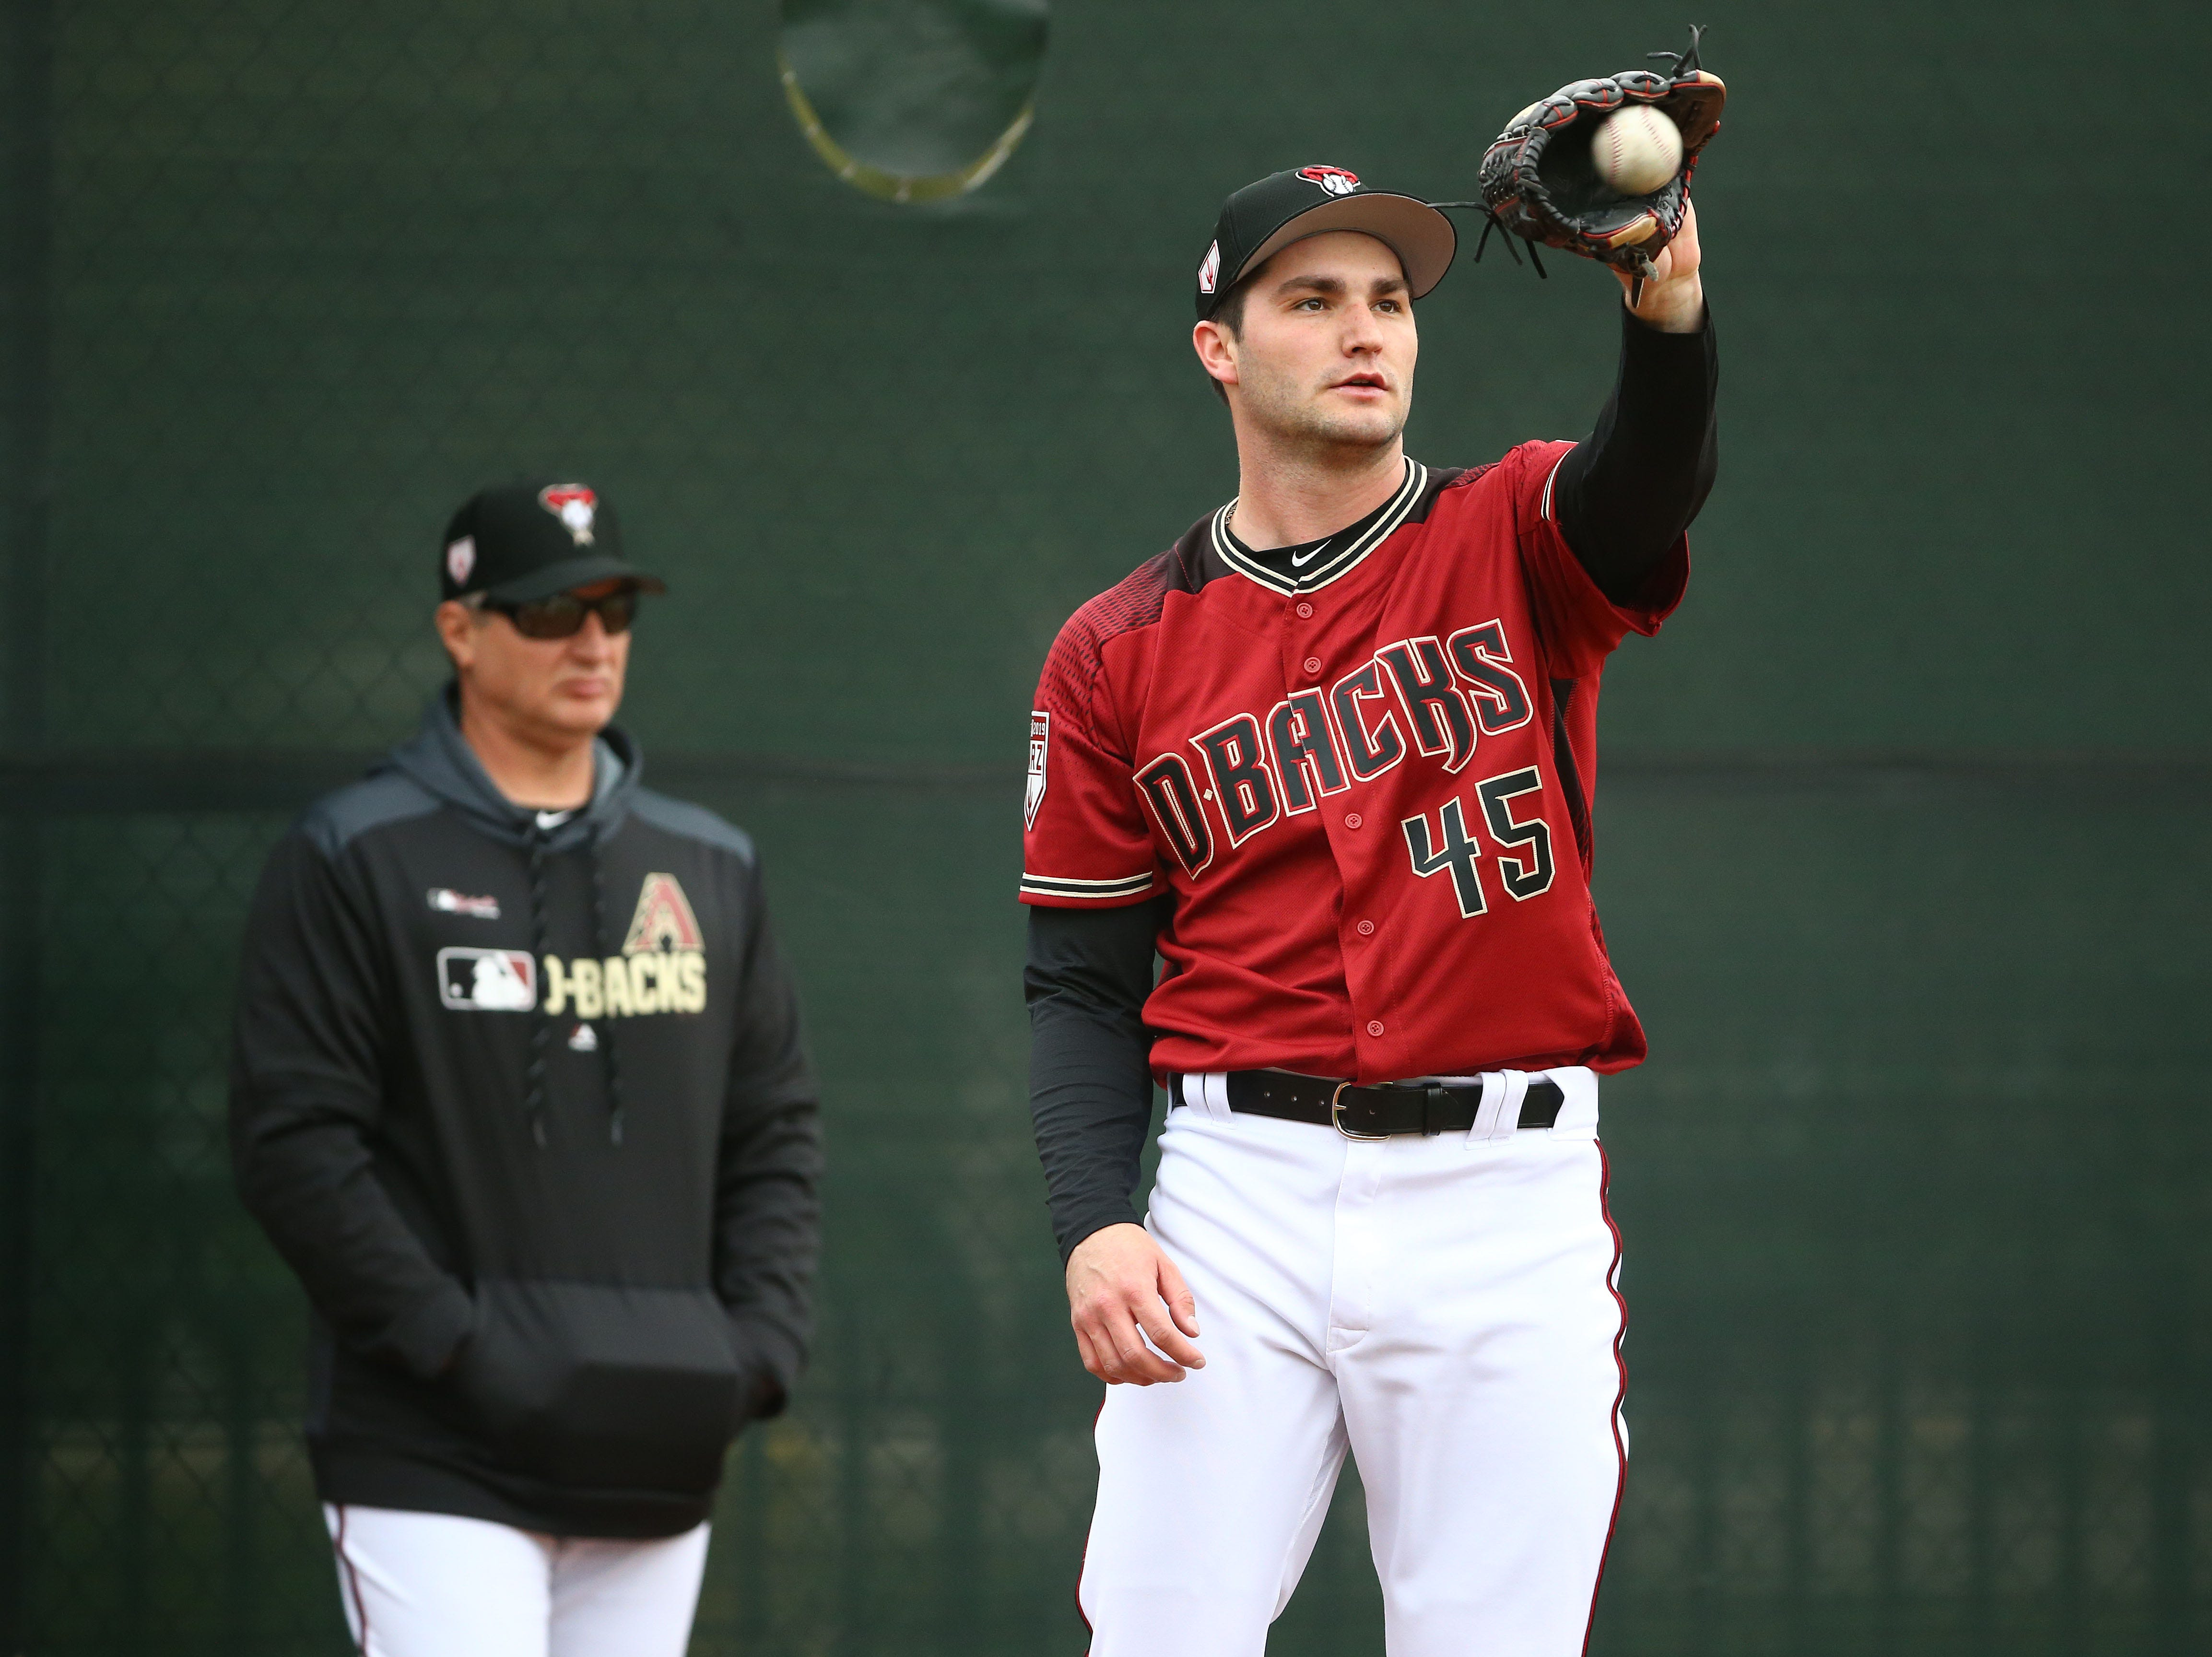 Arizona Diamondbacks pitcher Nick Green during the first day of spring training workouts on Feb. 13 at Salt River Fields in Scottsdale.